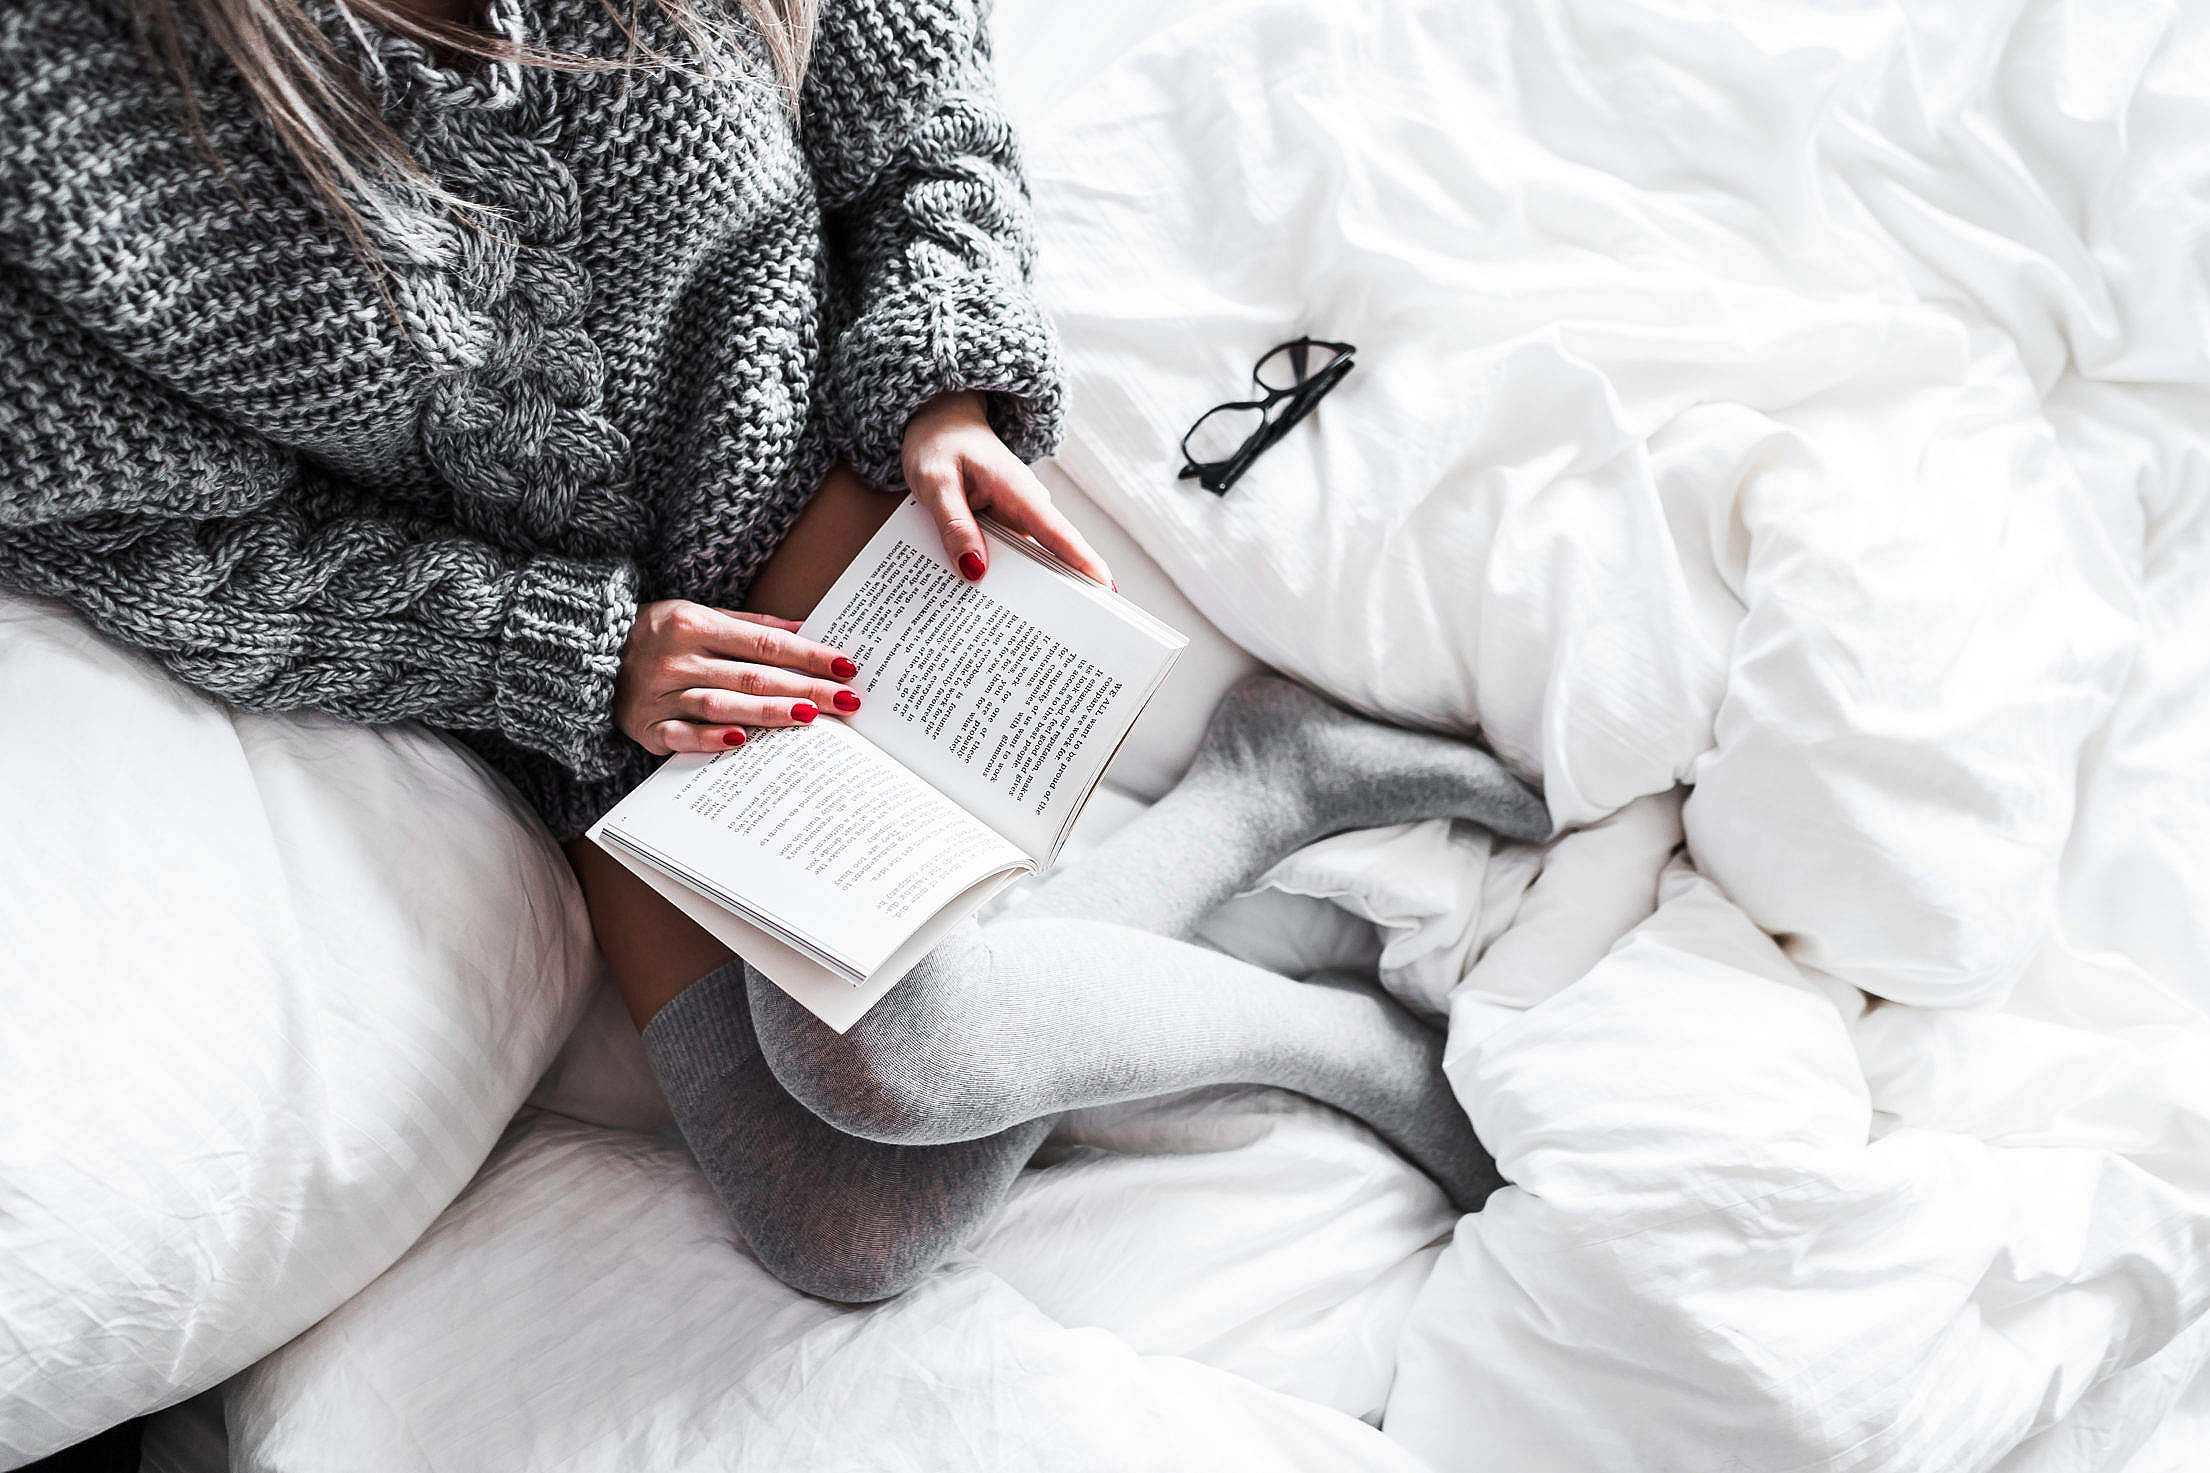 Relaxed Woman Reading in Bed Free Stock Photo